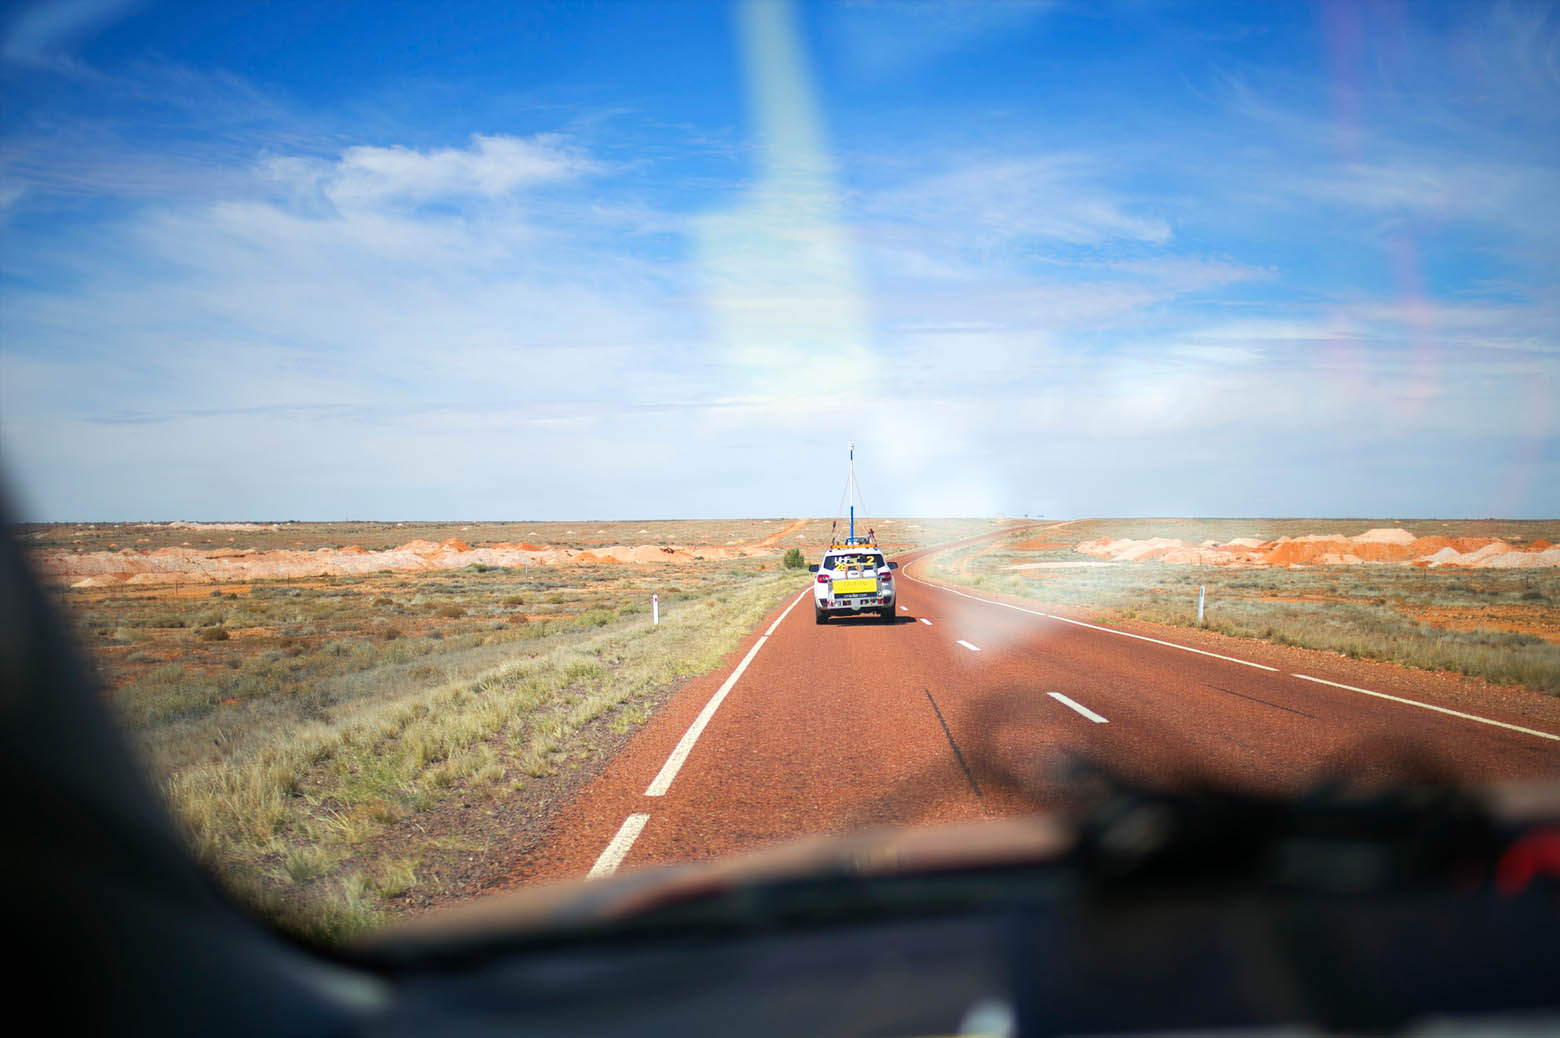 Looking out the window of a moving car in the Outback.